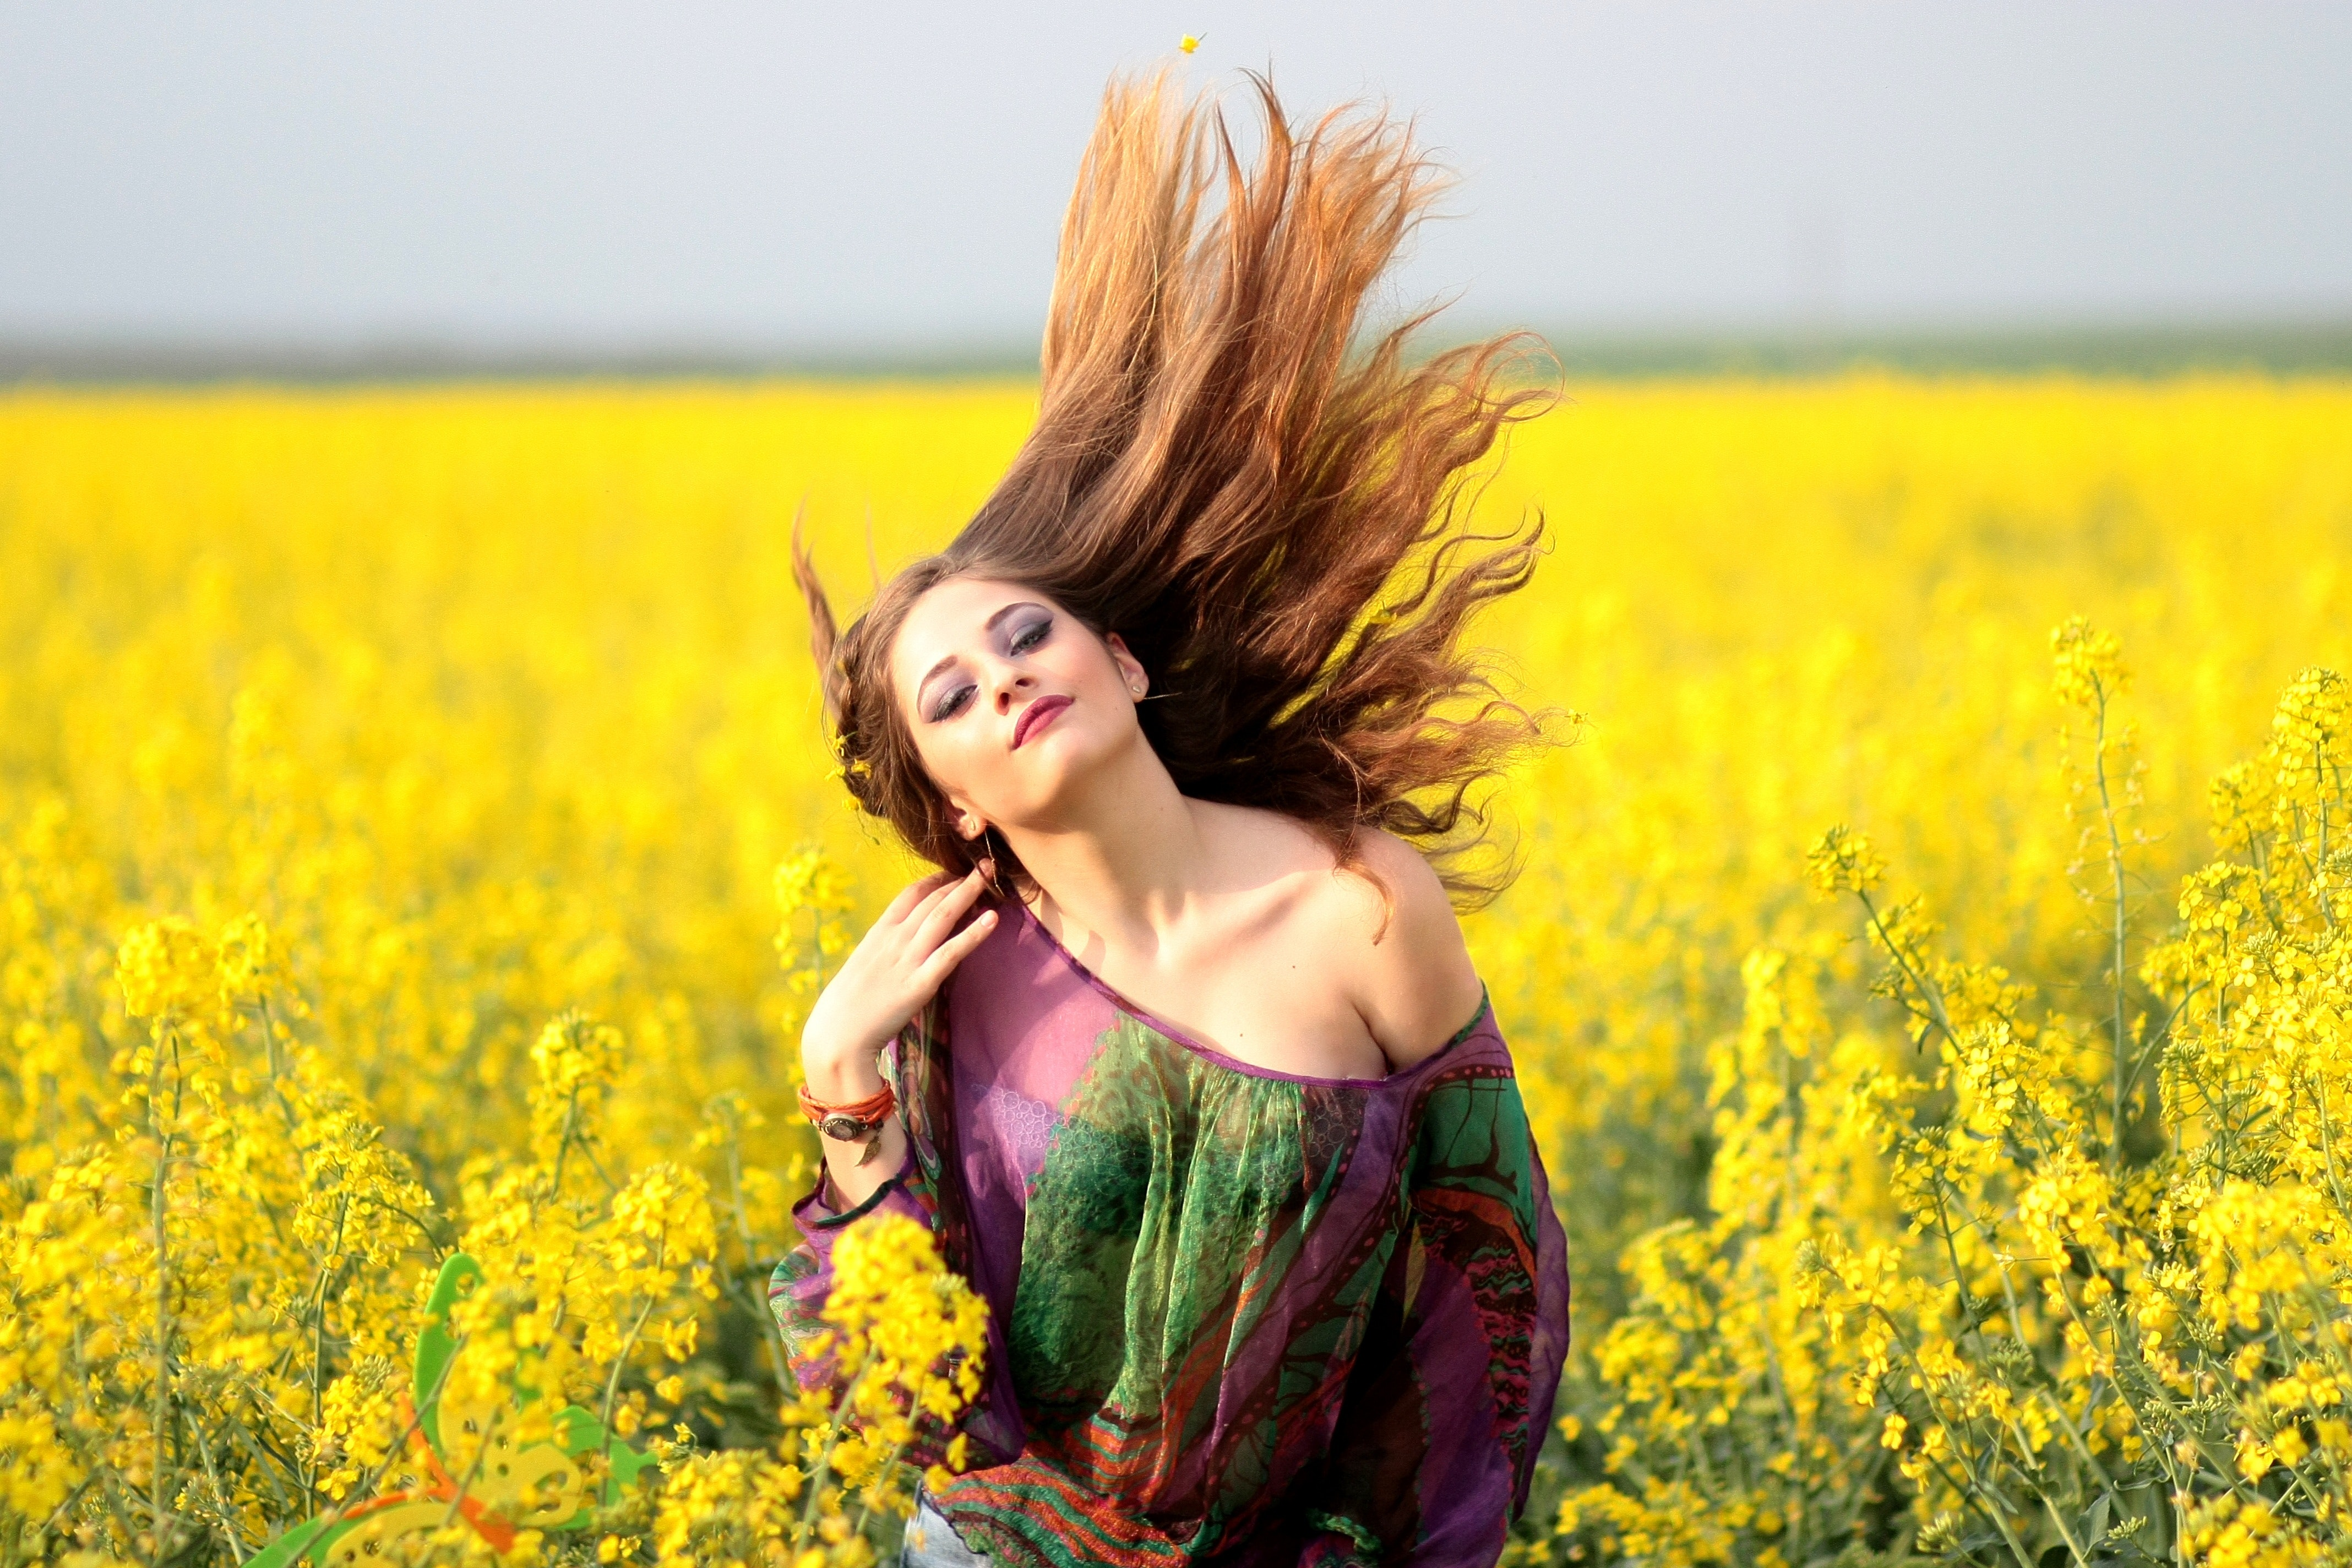 Portrait of Young Woman With Yellow Flowers in Field, Beautiful, Leisure, Woman, Summer, HQ Photo